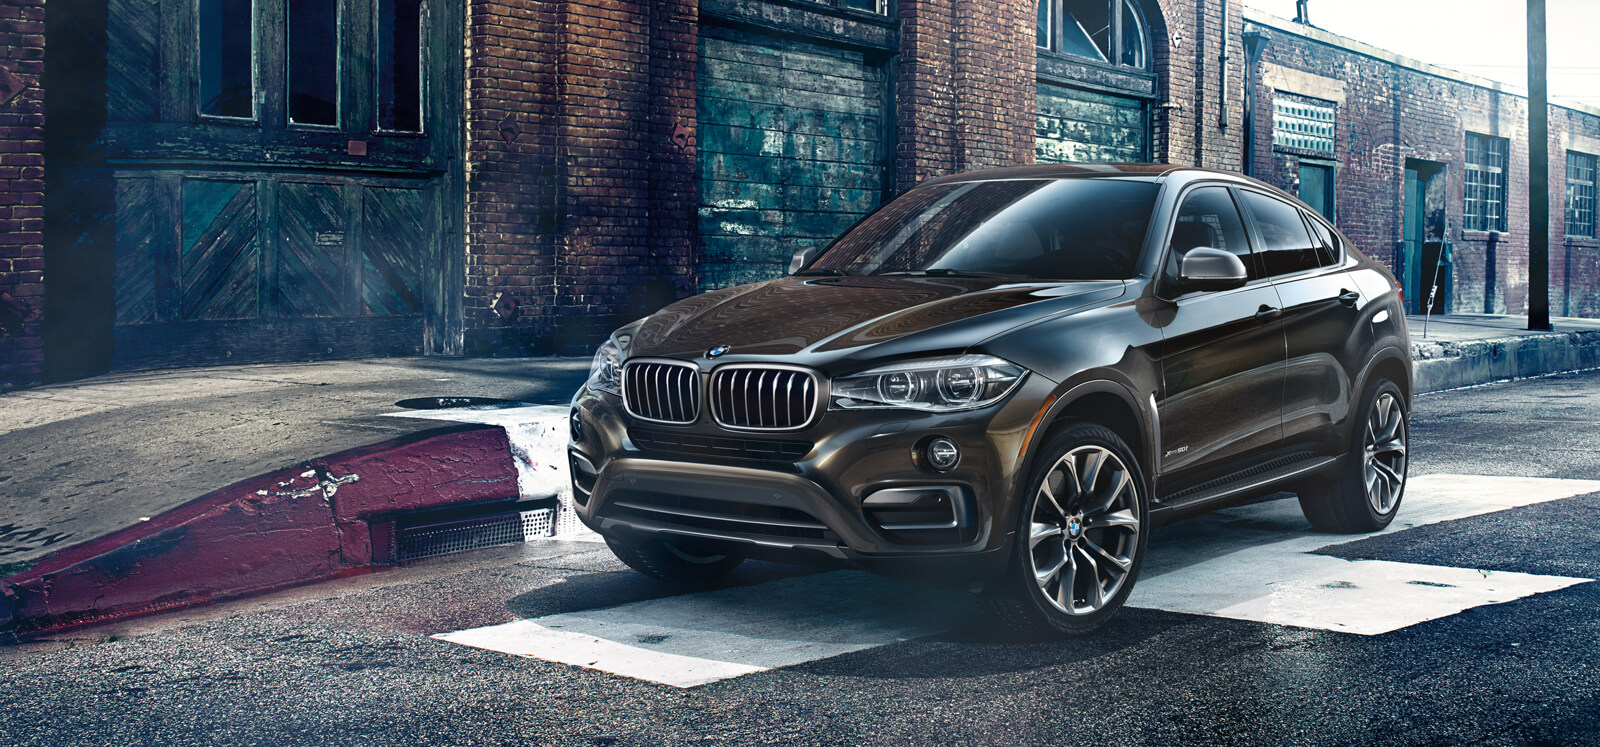 BMW X6 wallpapers, Vehicles, HQ BMW X6 pictures | 4K ...